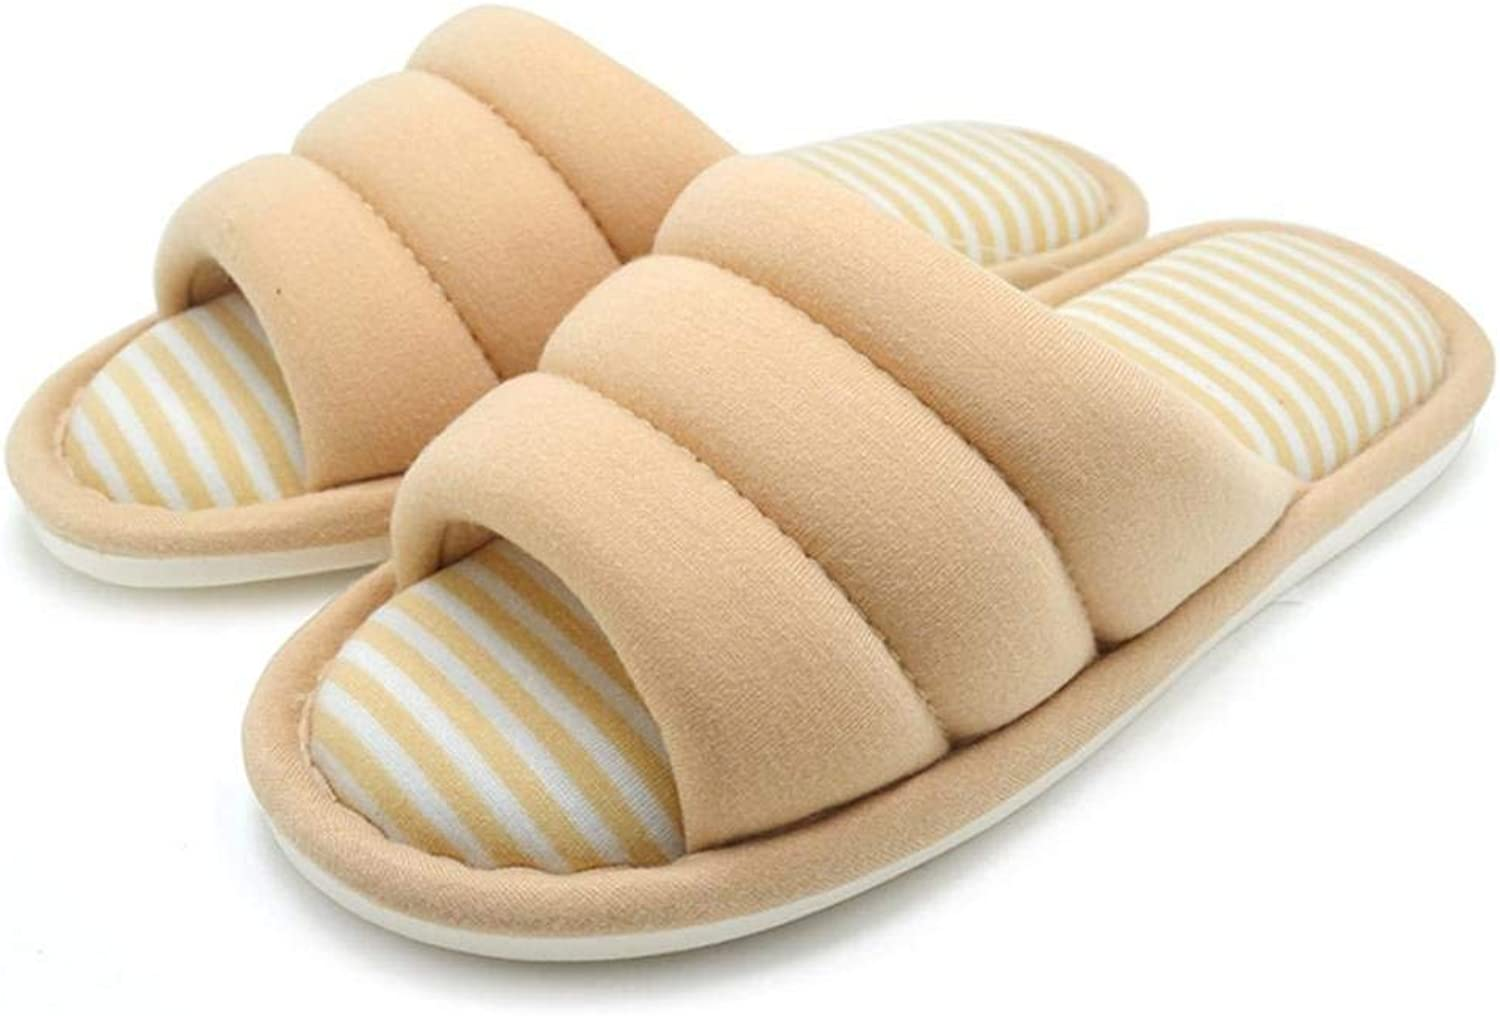 GouuoHi Womens Slippers Ladies Cotton shoes Simplicity All Seasons Indoor Home Slippers of Soft Cotton Slippers for Women Pink Yellow